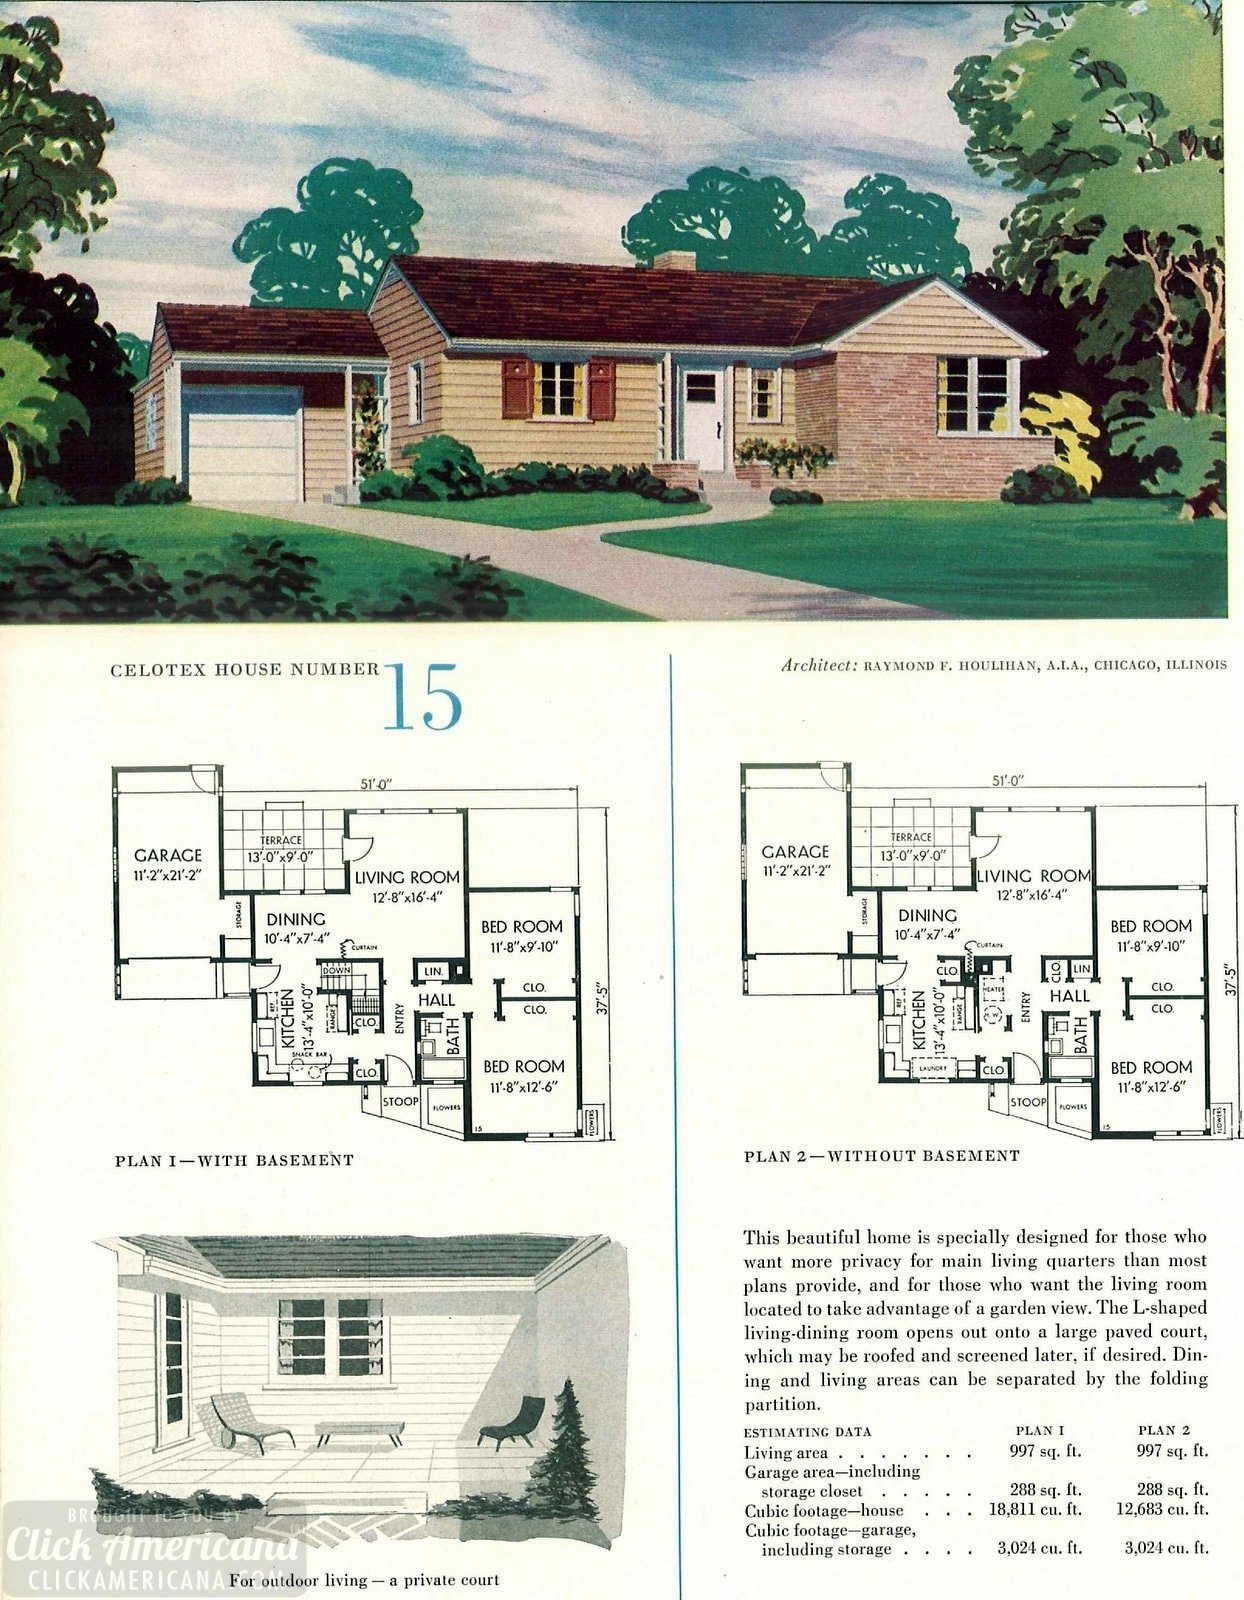 Original vintage house designs for homes built in 1952 - at Click Americana (1)